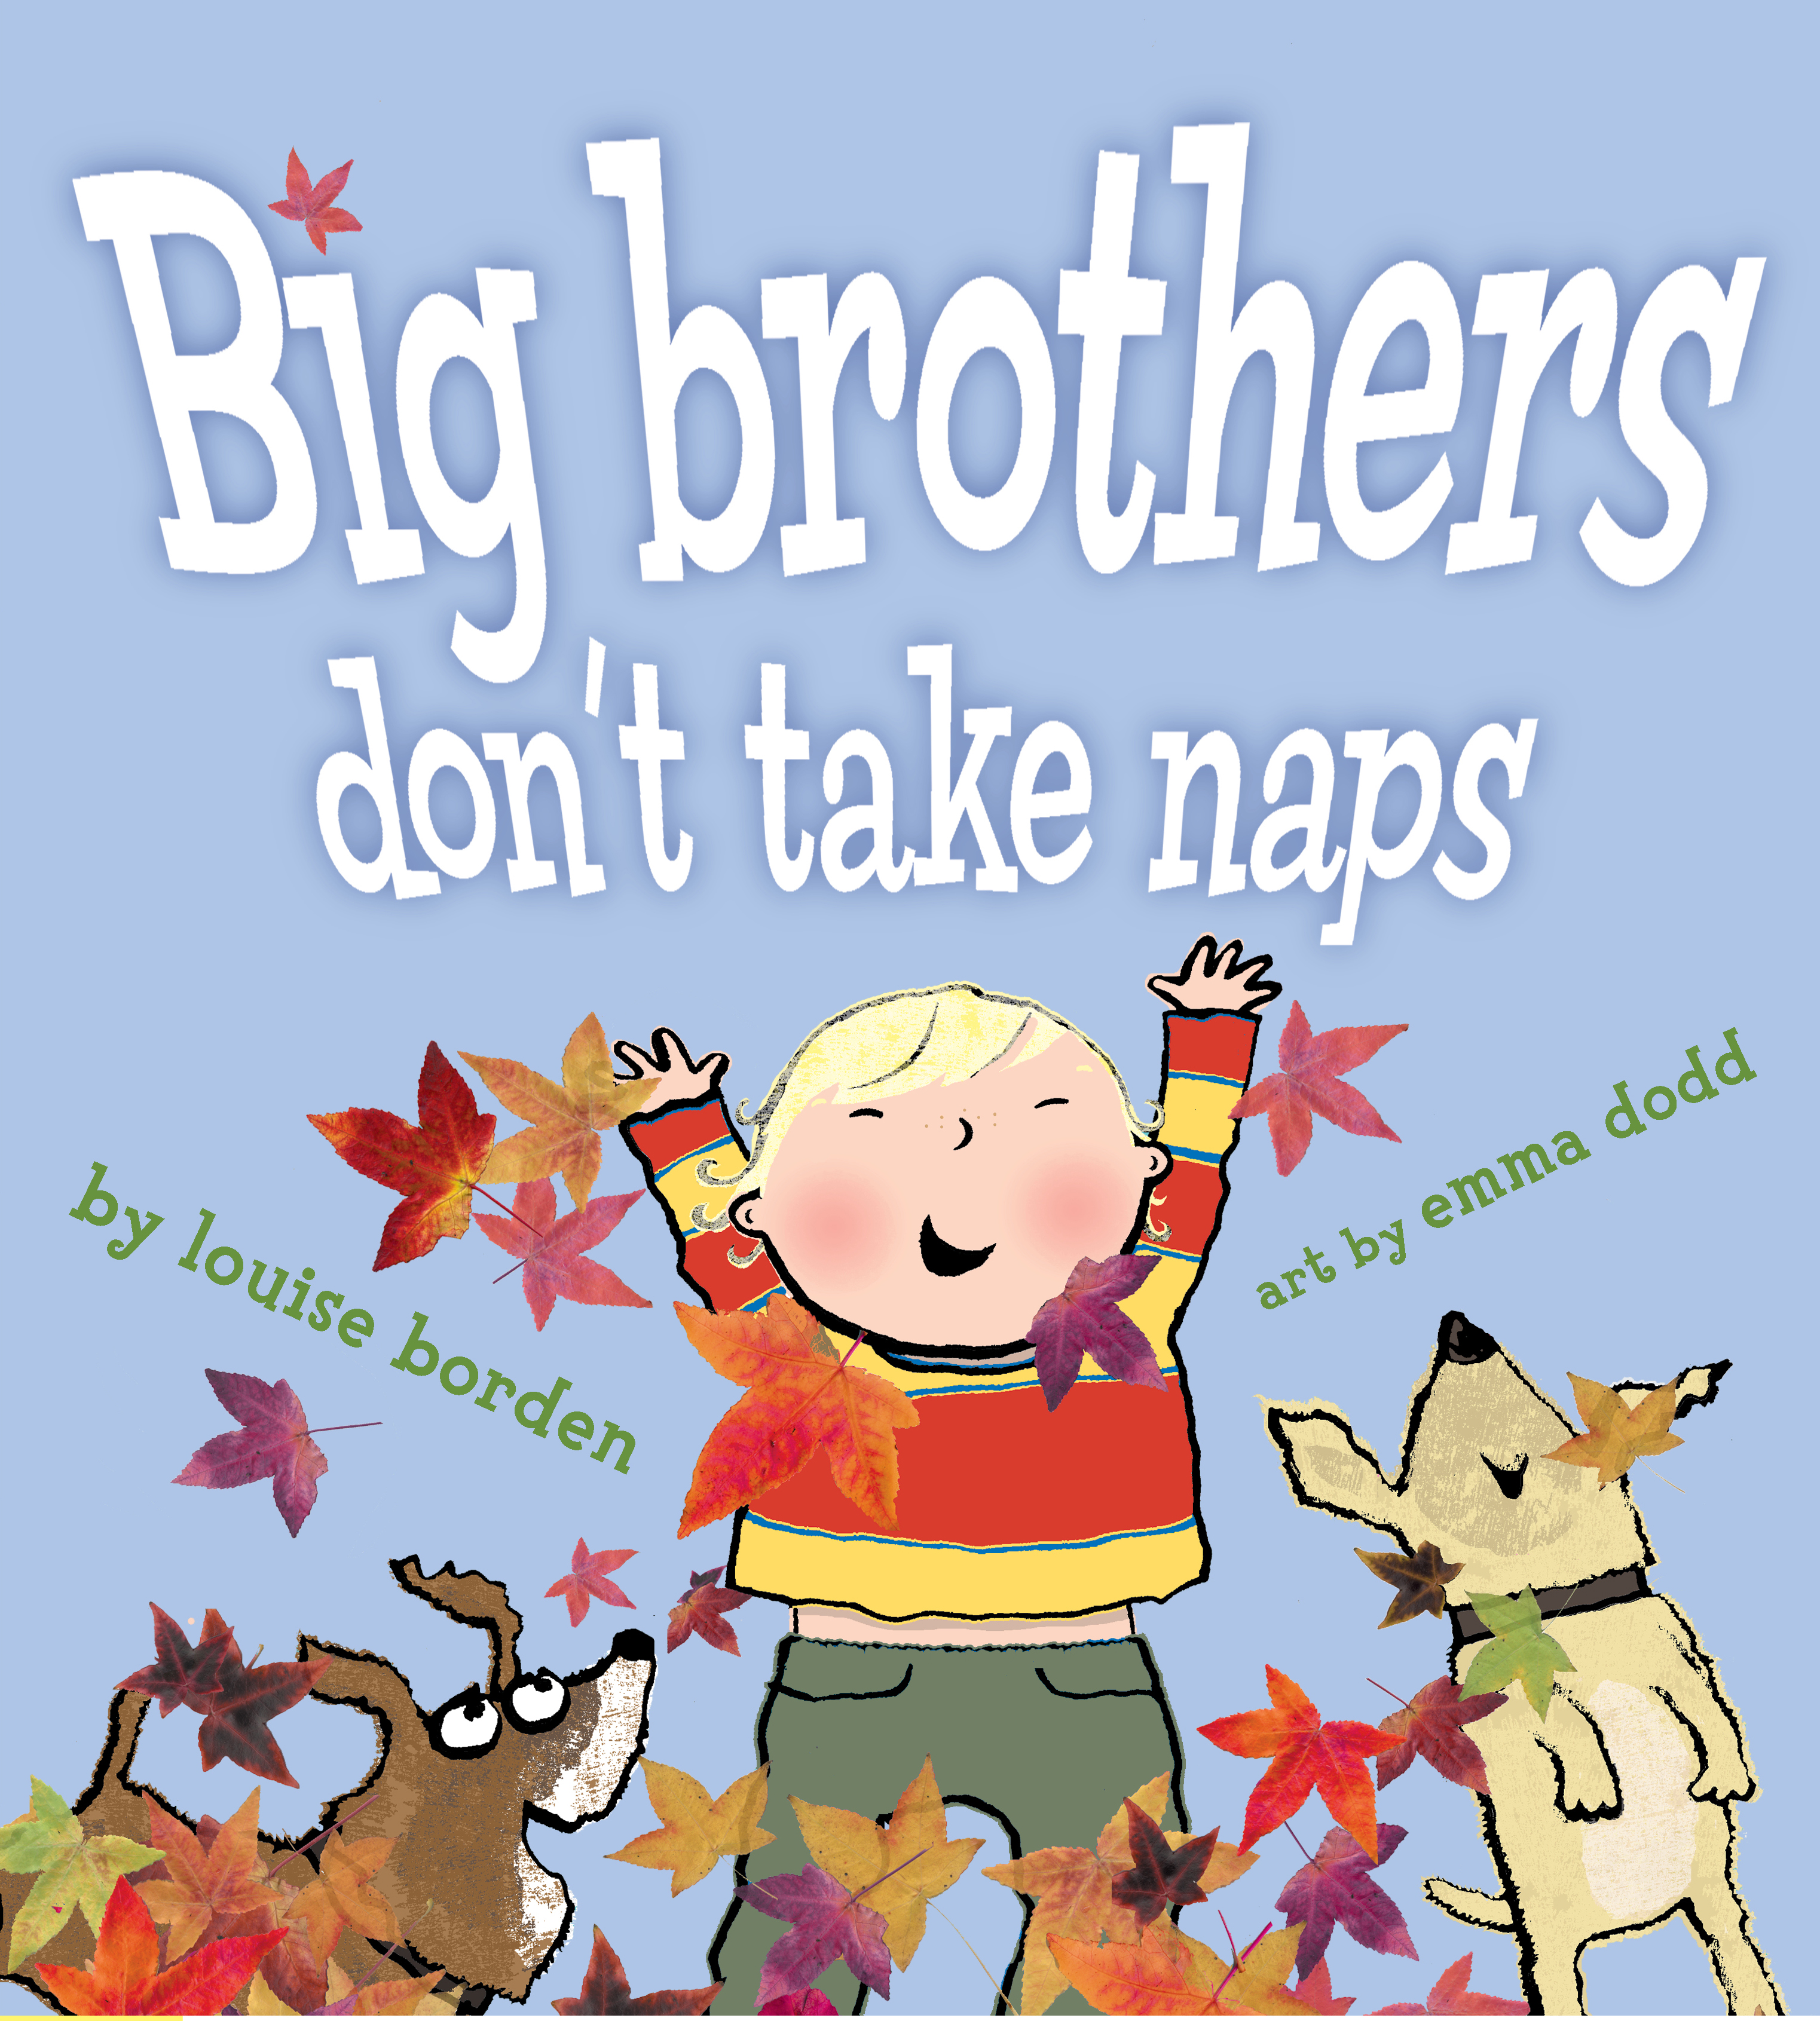 Children Book Covers : Big brothers don t take naps book by louise borden emma